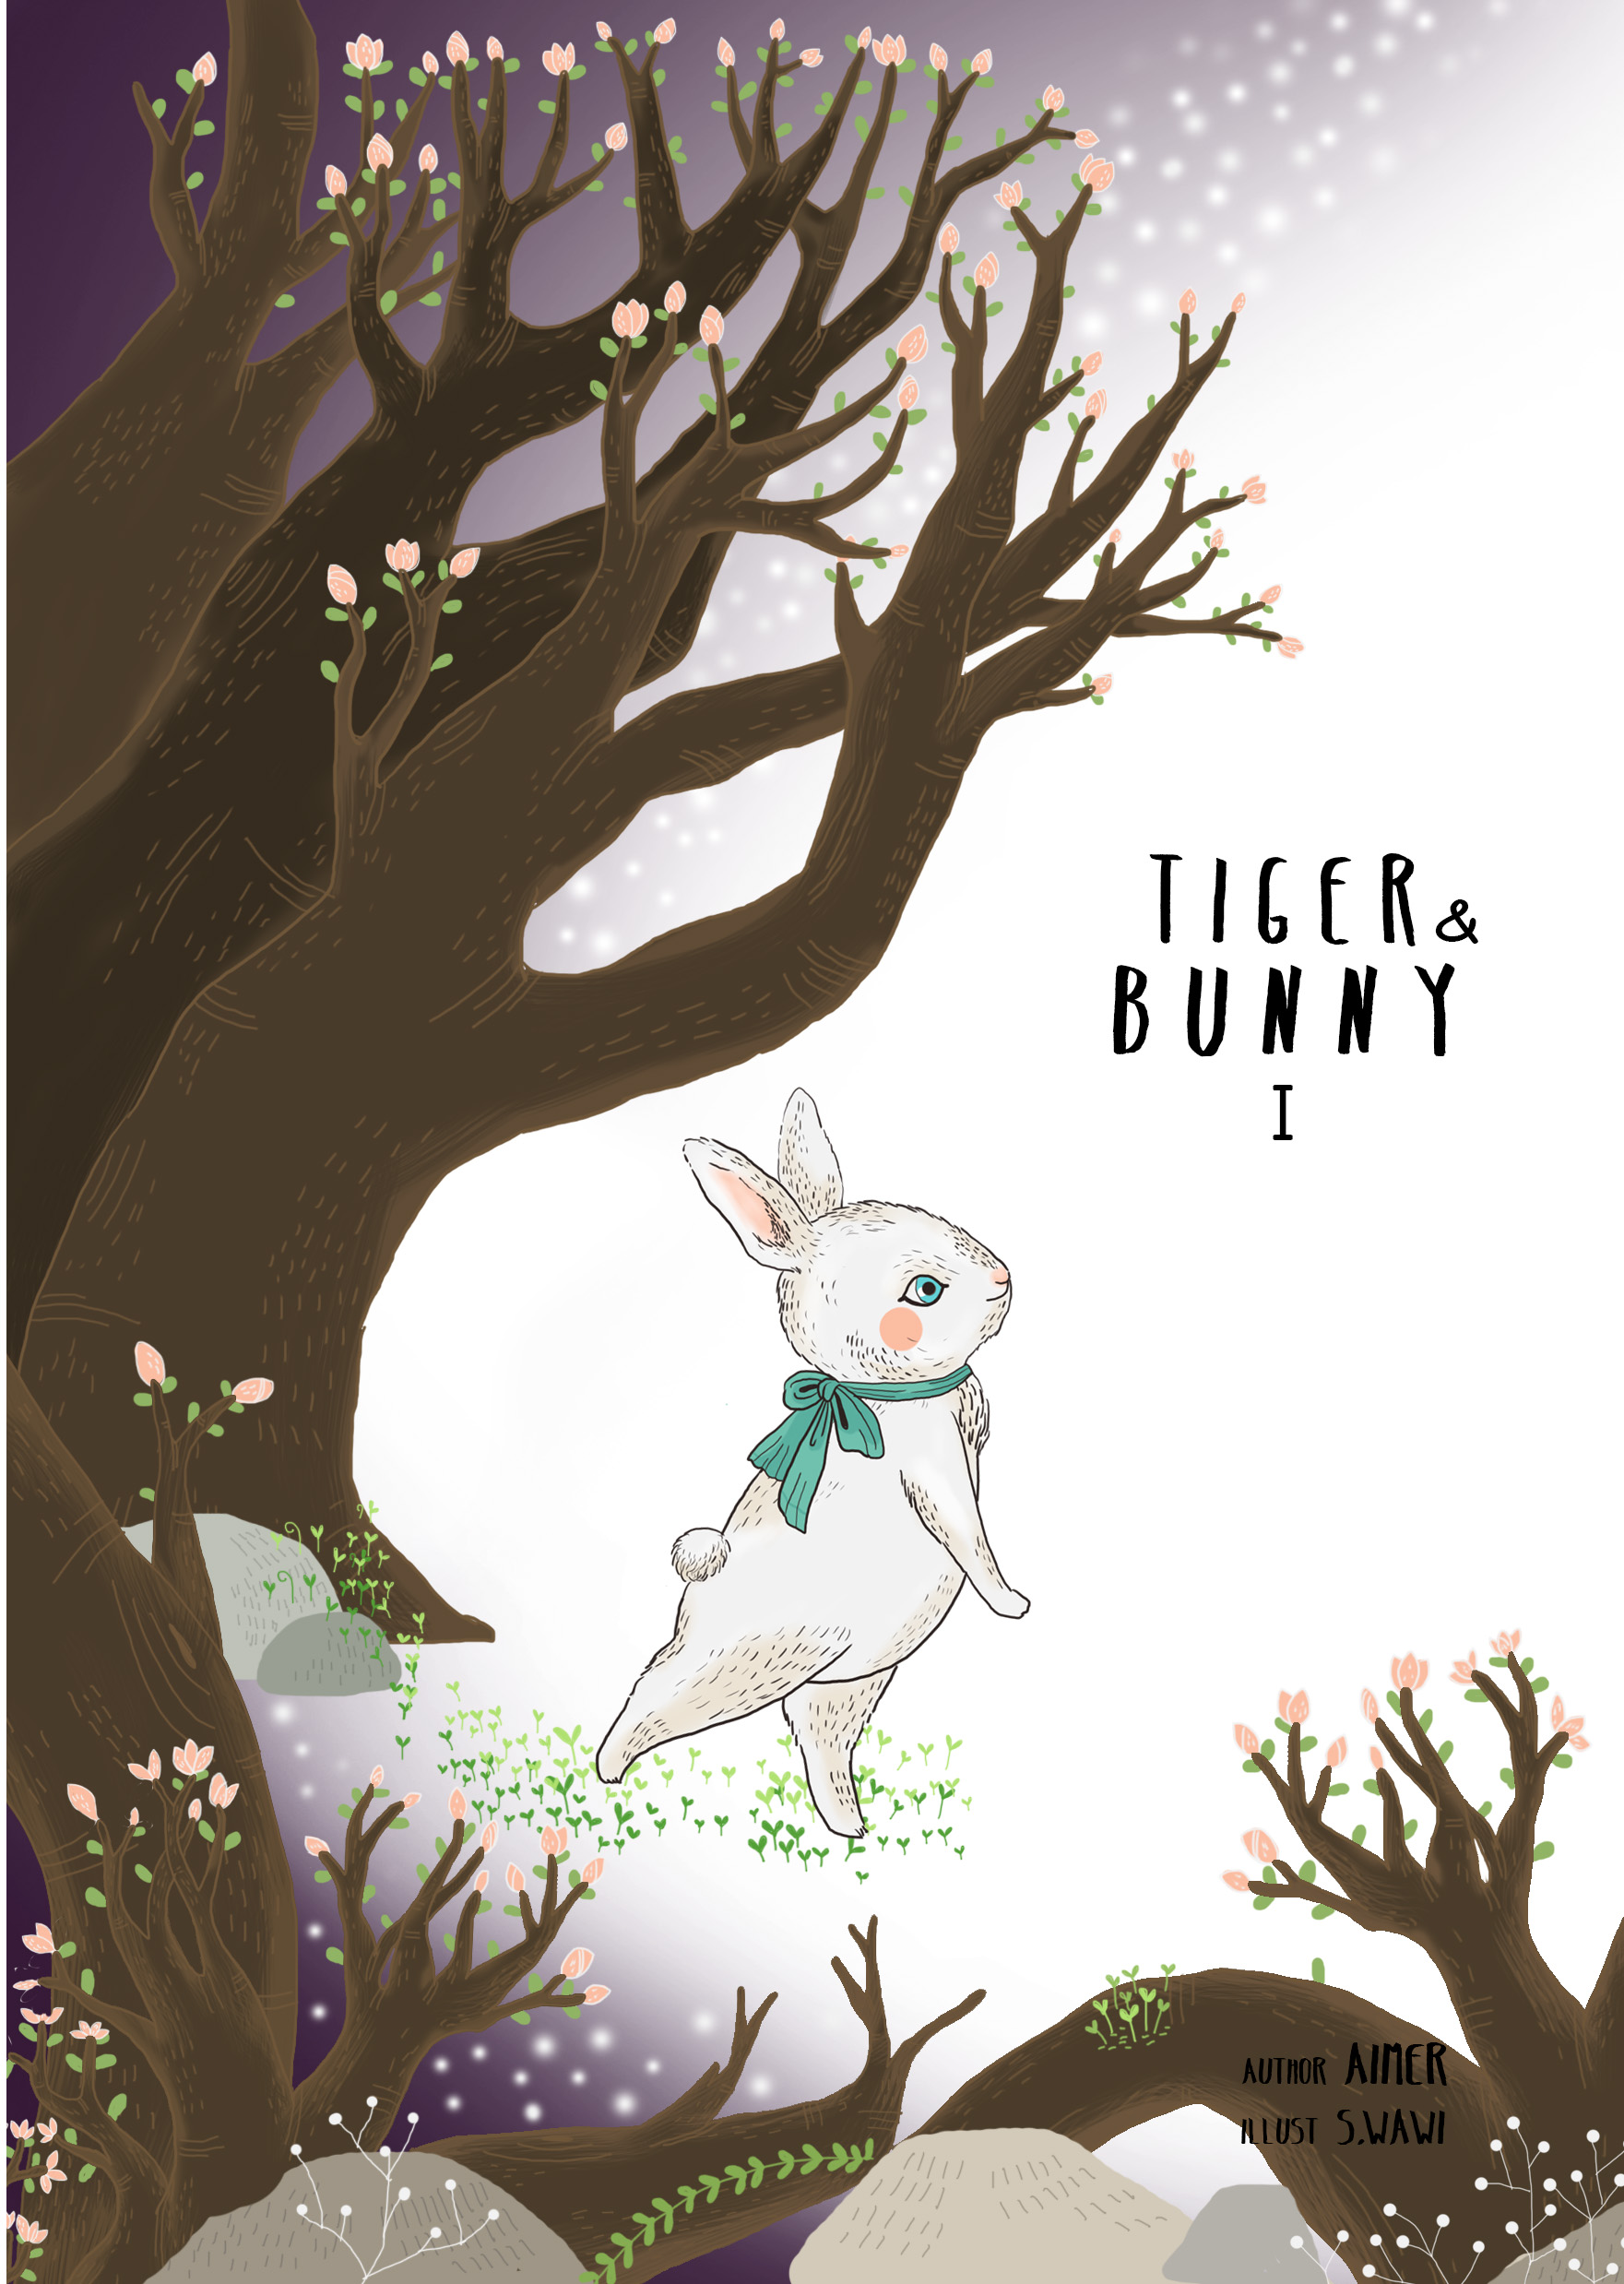 Tiger & Bunny Story By Aimer